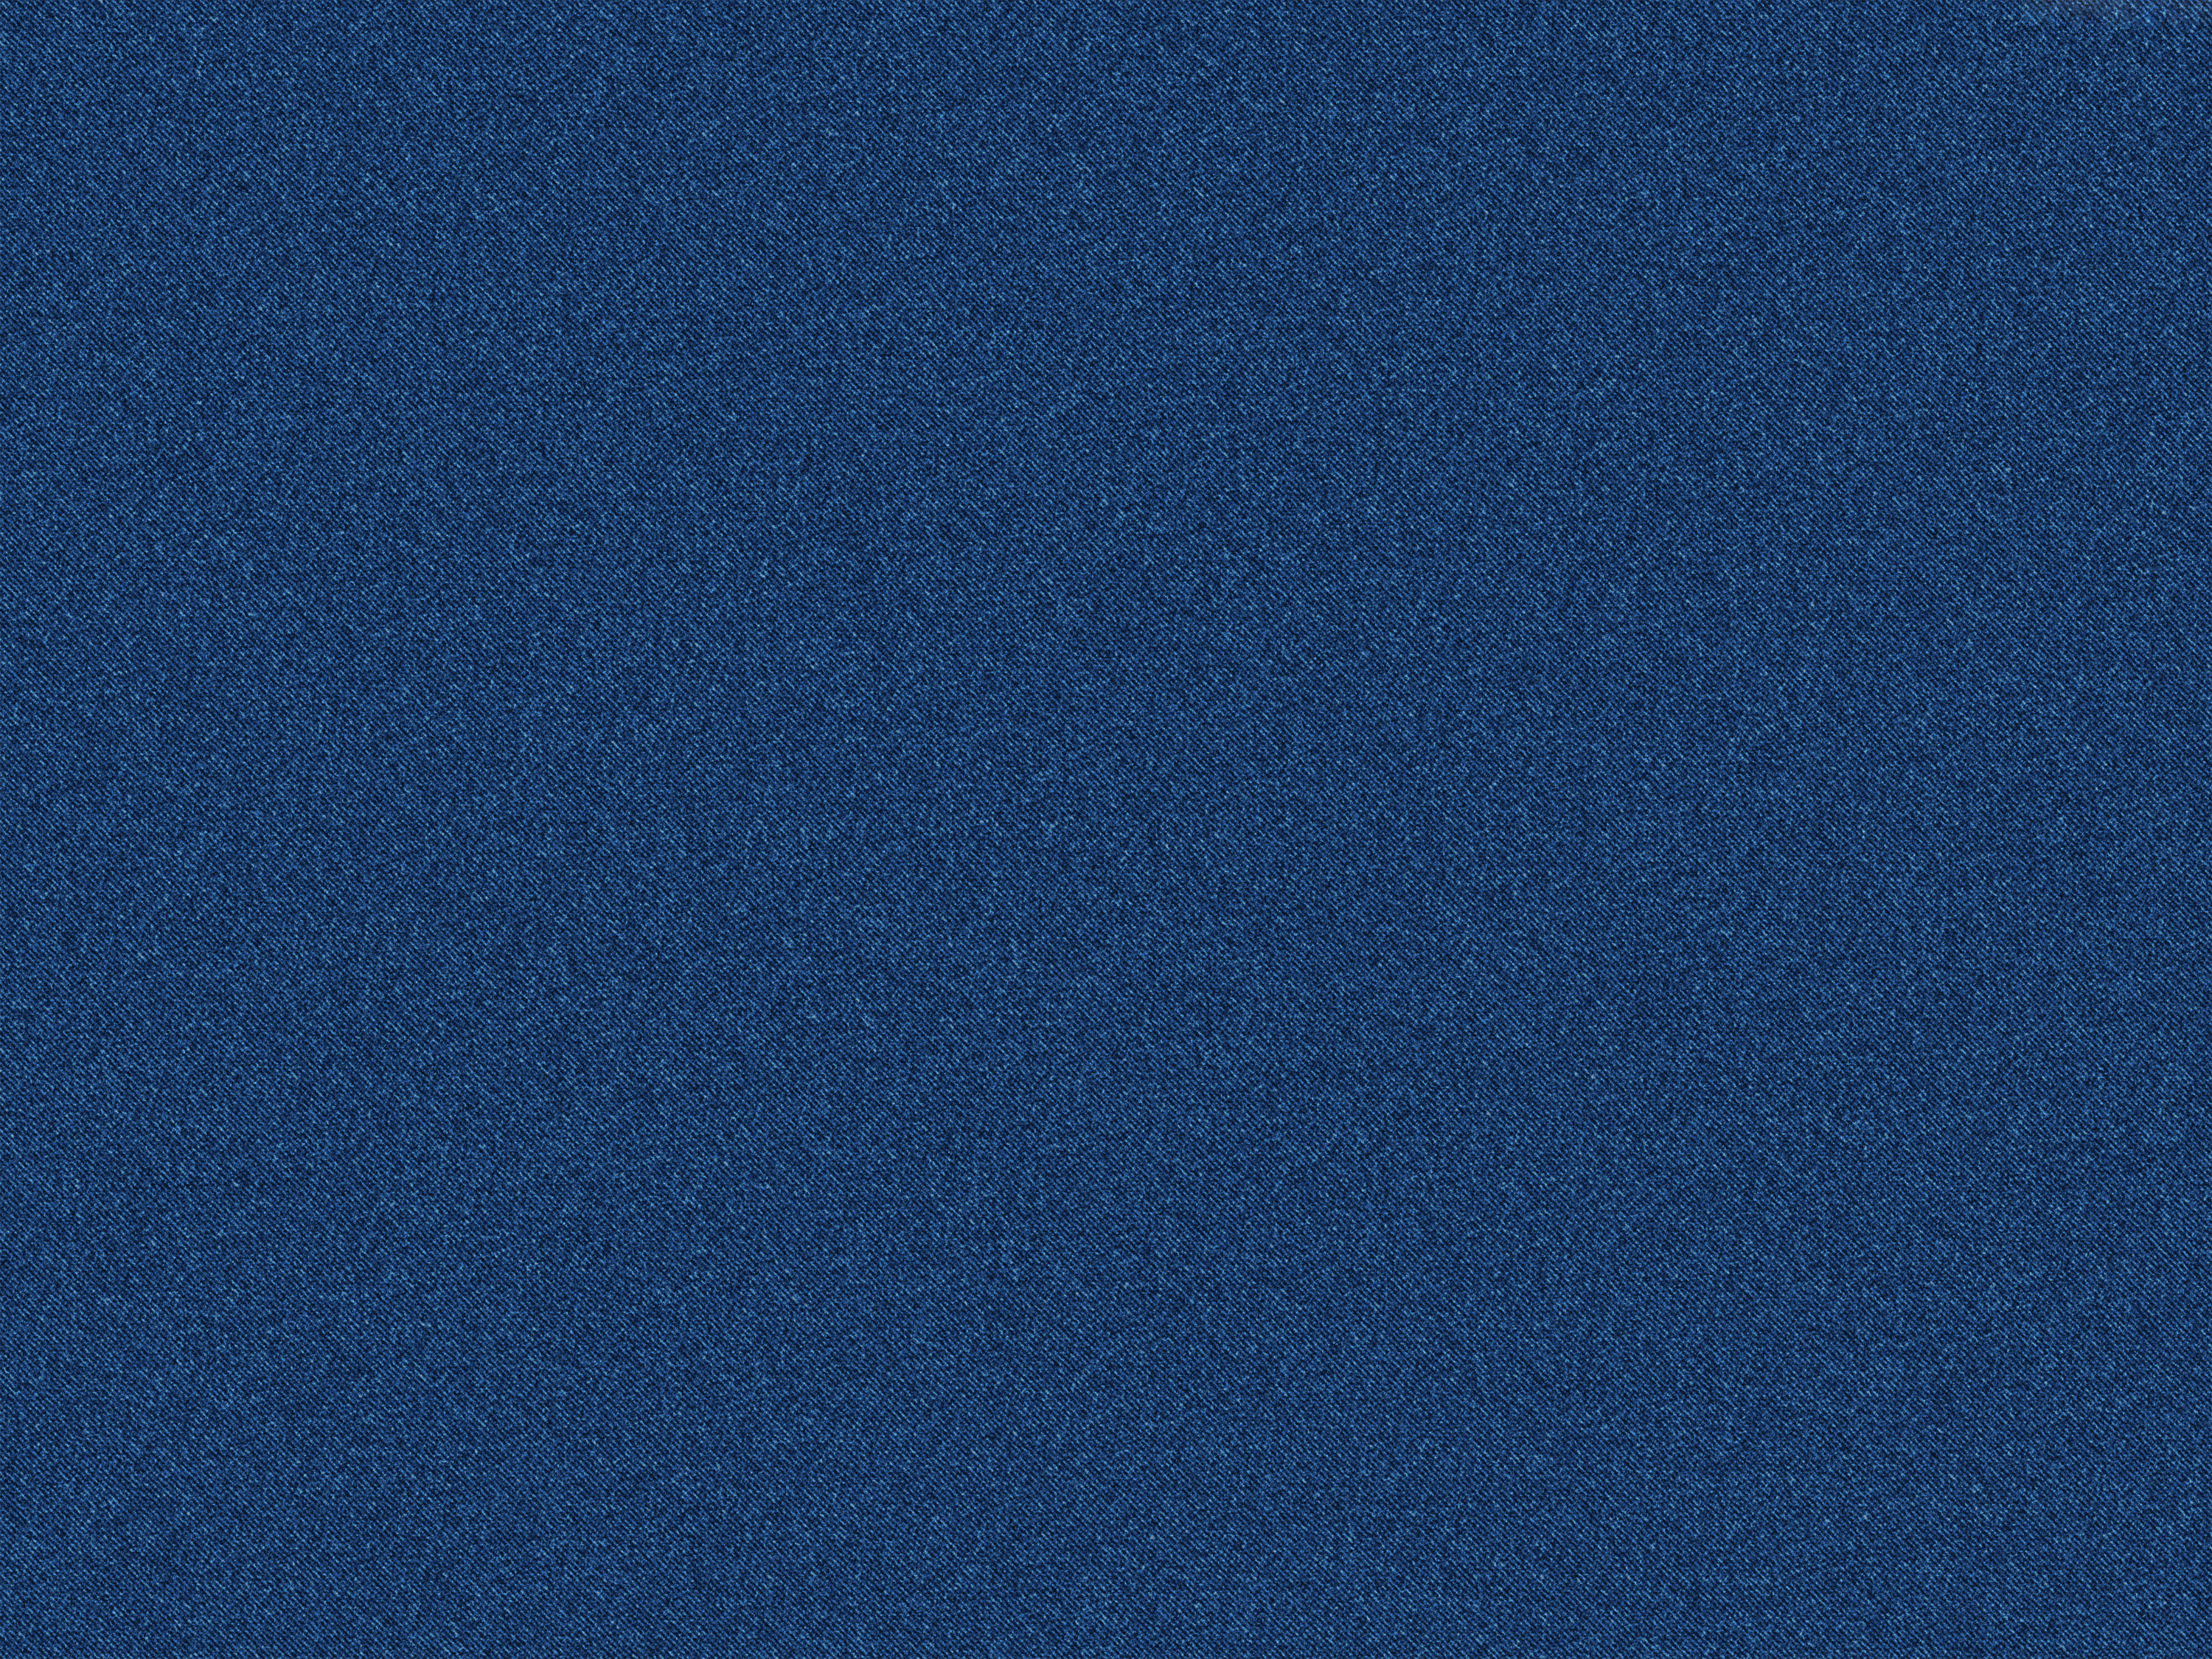 Texture Jeans Cloth Download Photo Background